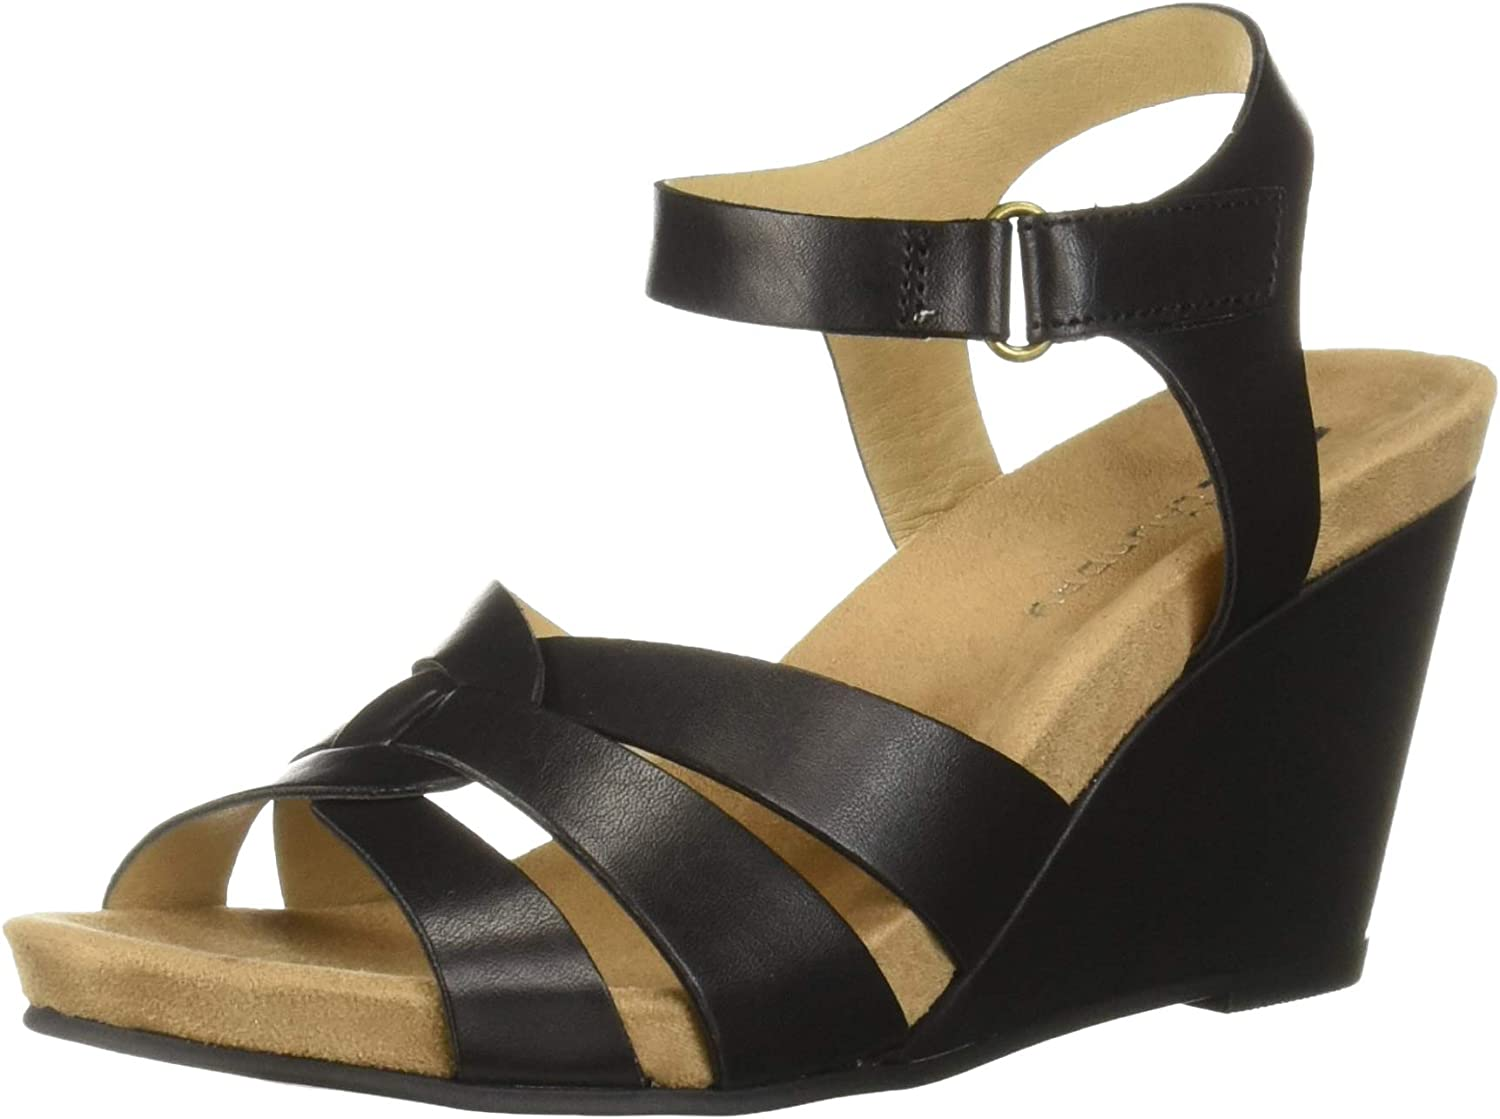 CL by Chinese Laundry Women's Truest Wedge Sandal